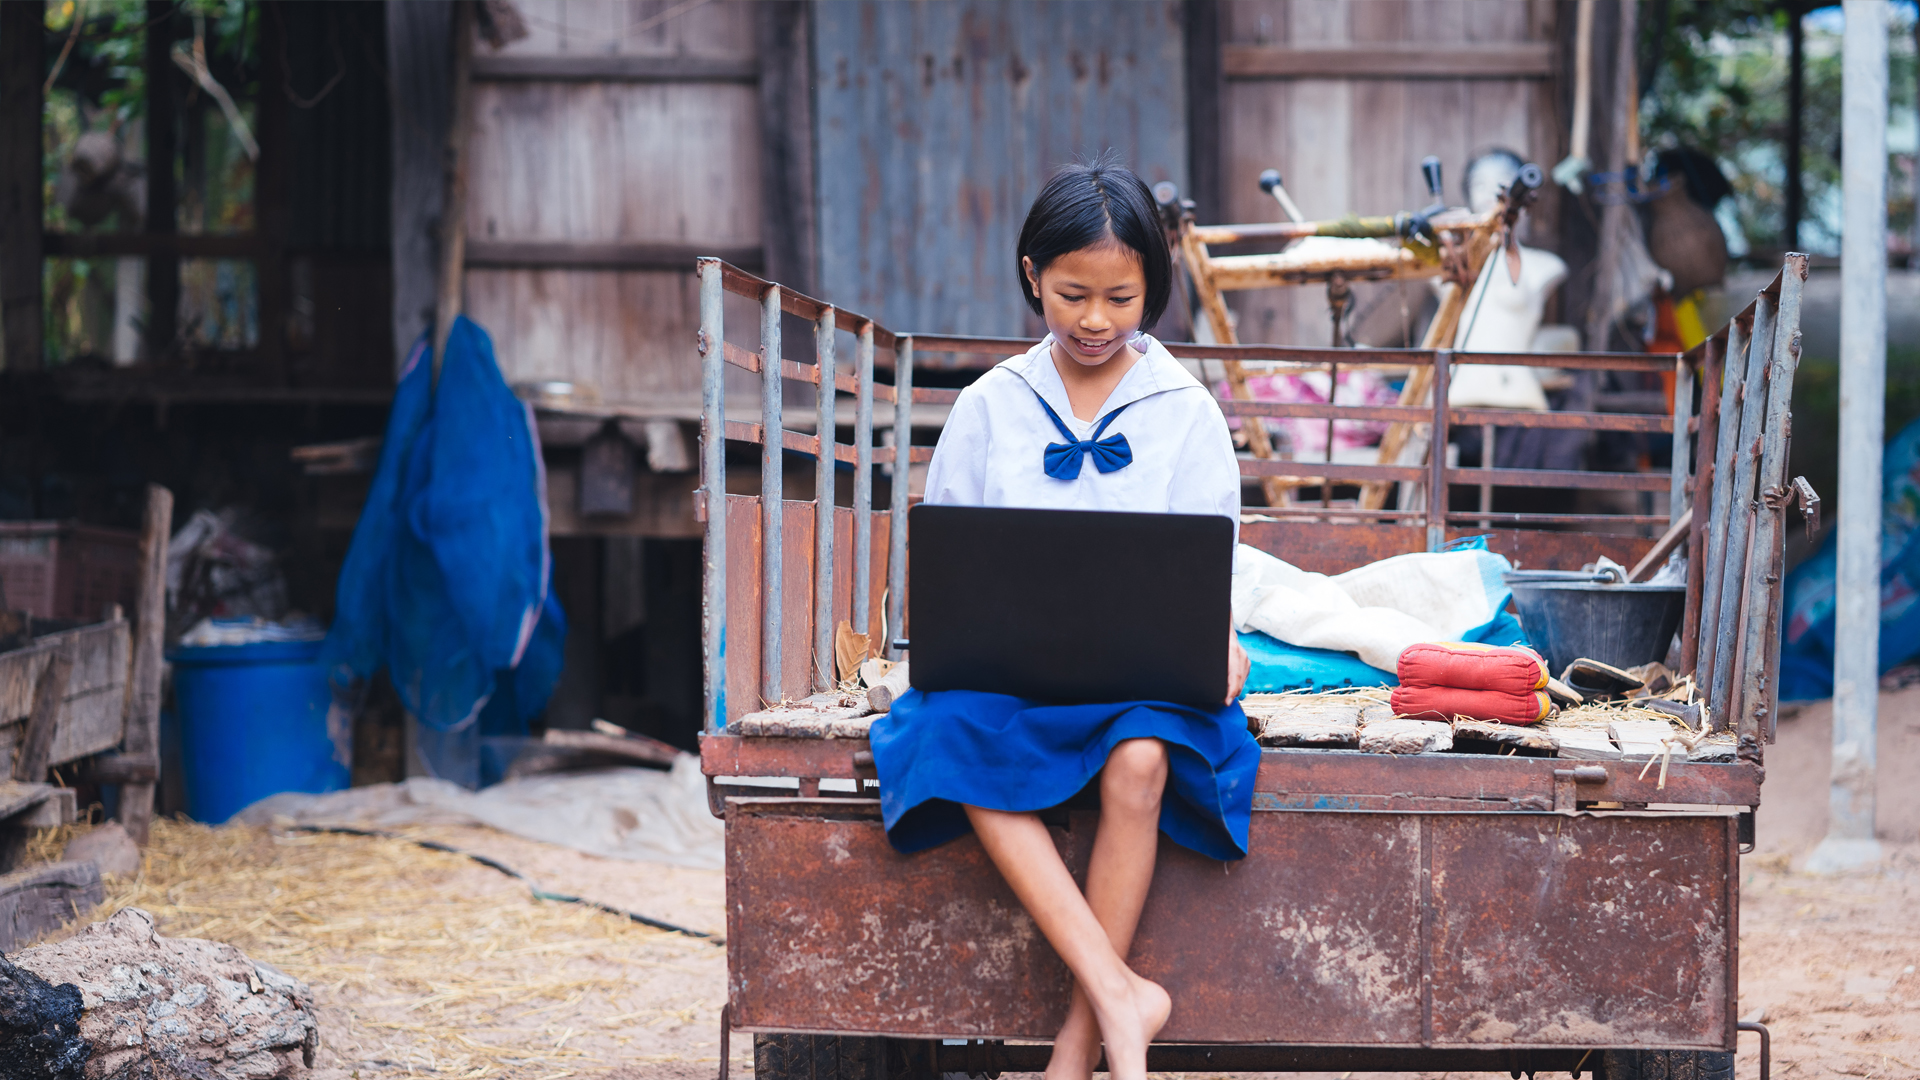 Vietnamese girl with uniform and laptop sitting